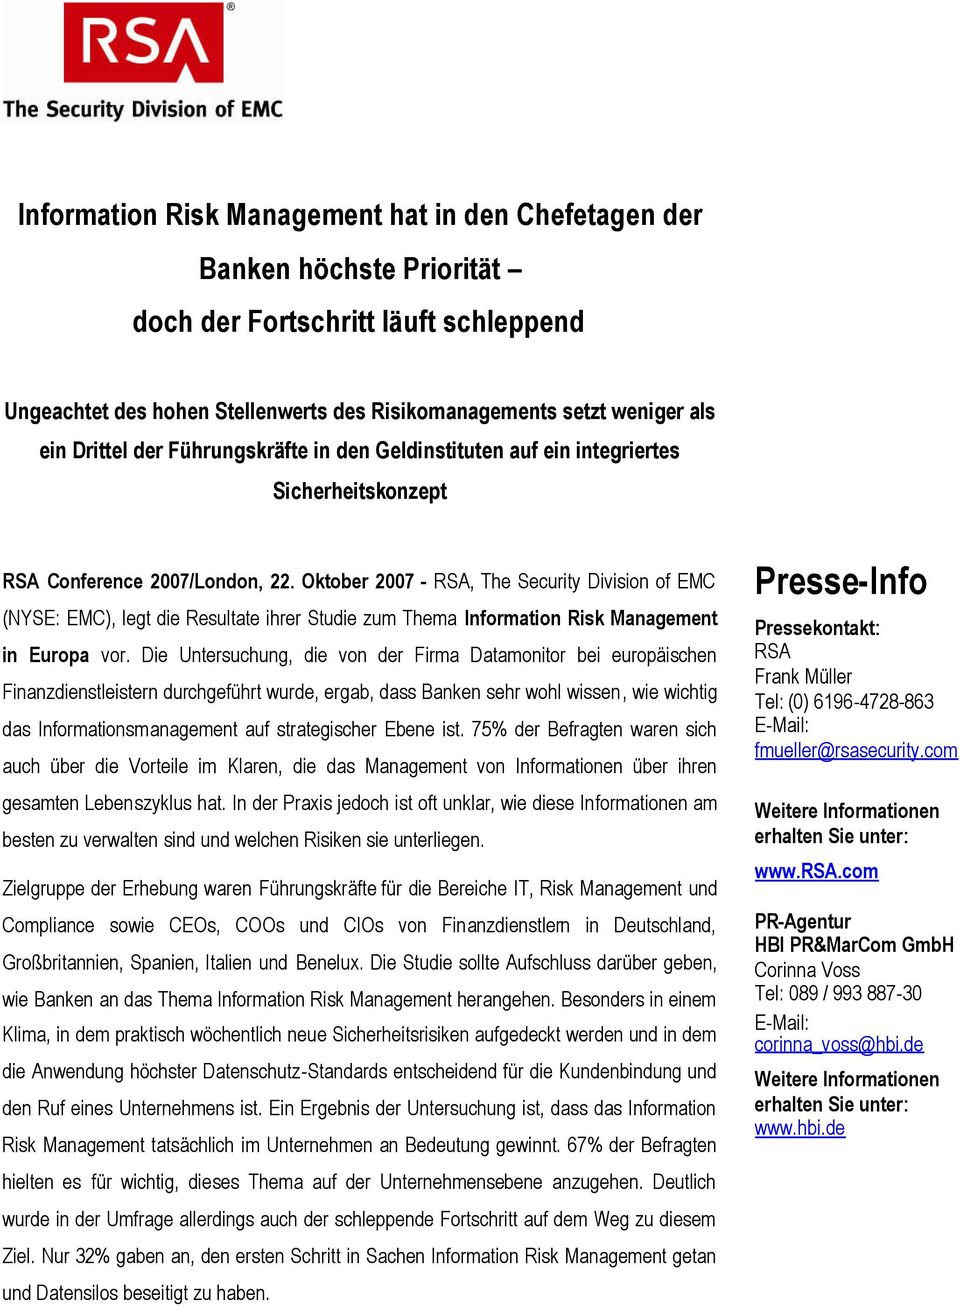 Oktober 2007 - RSA, The Security Division of EMC (NYSE: EMC), legt die Resultate ihrer Studie zum Thema Information Risk Management in Europa vor.